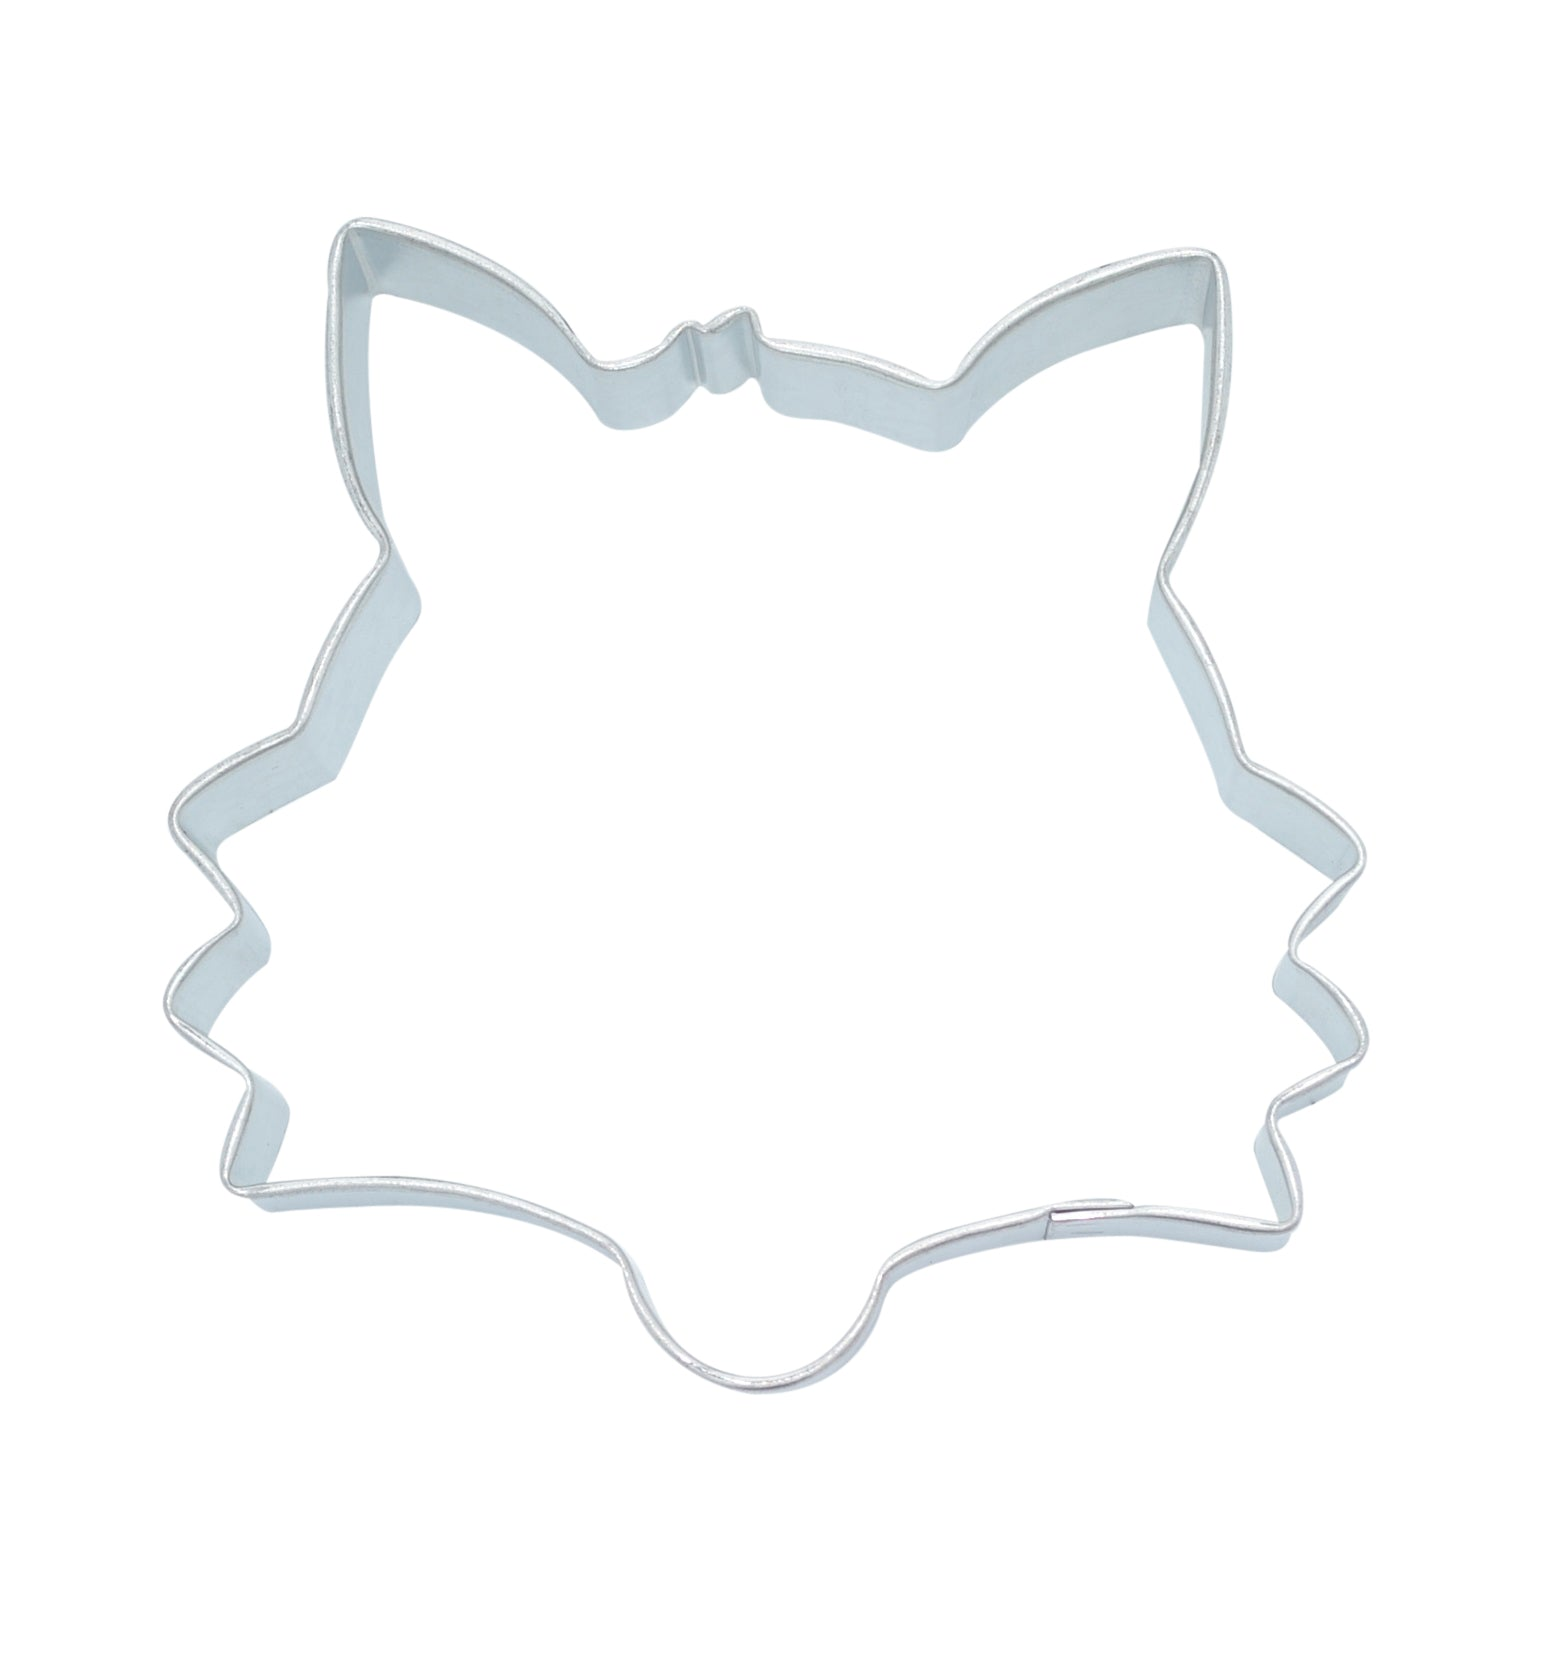 Fox Face 8.5cm Cookie Cutter-Cookie Cutter Shop Australia